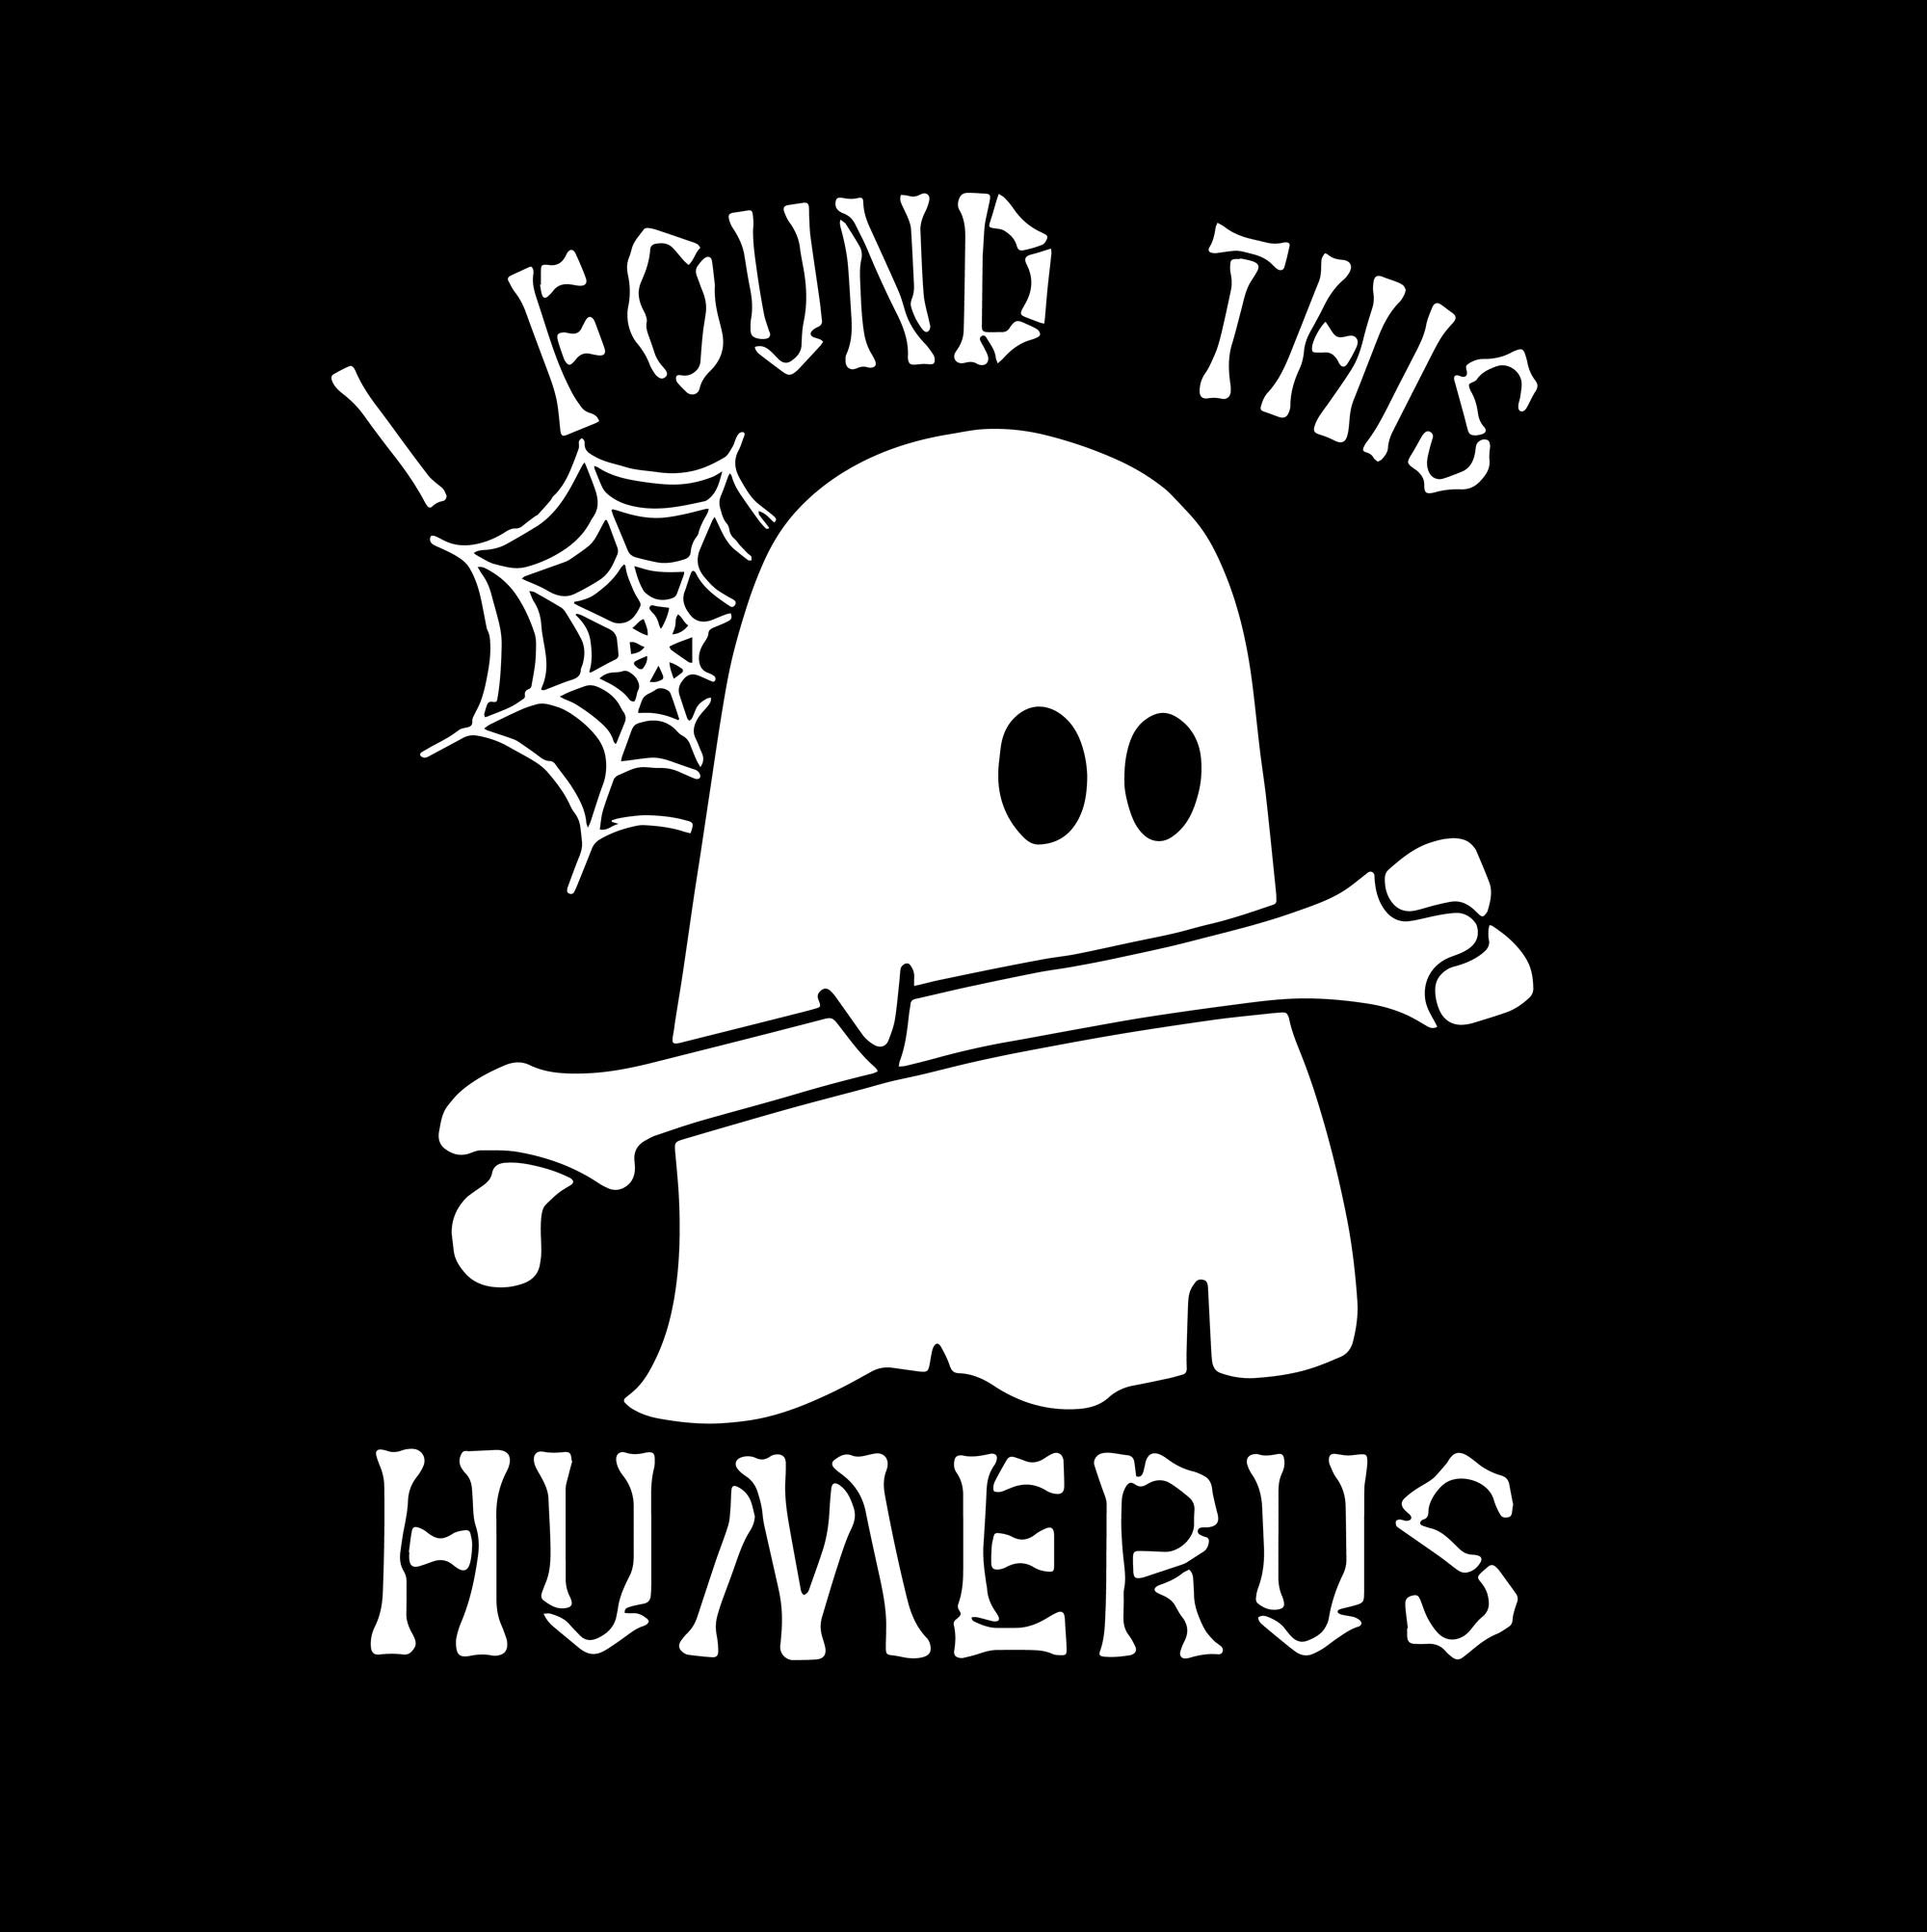 I Found This Humerus png,I Found This Humerus Ghost Radioligist Nurse Halloween,I Found This Humerus Ghost Radioligist Nurse svg, png, eps, dxf file